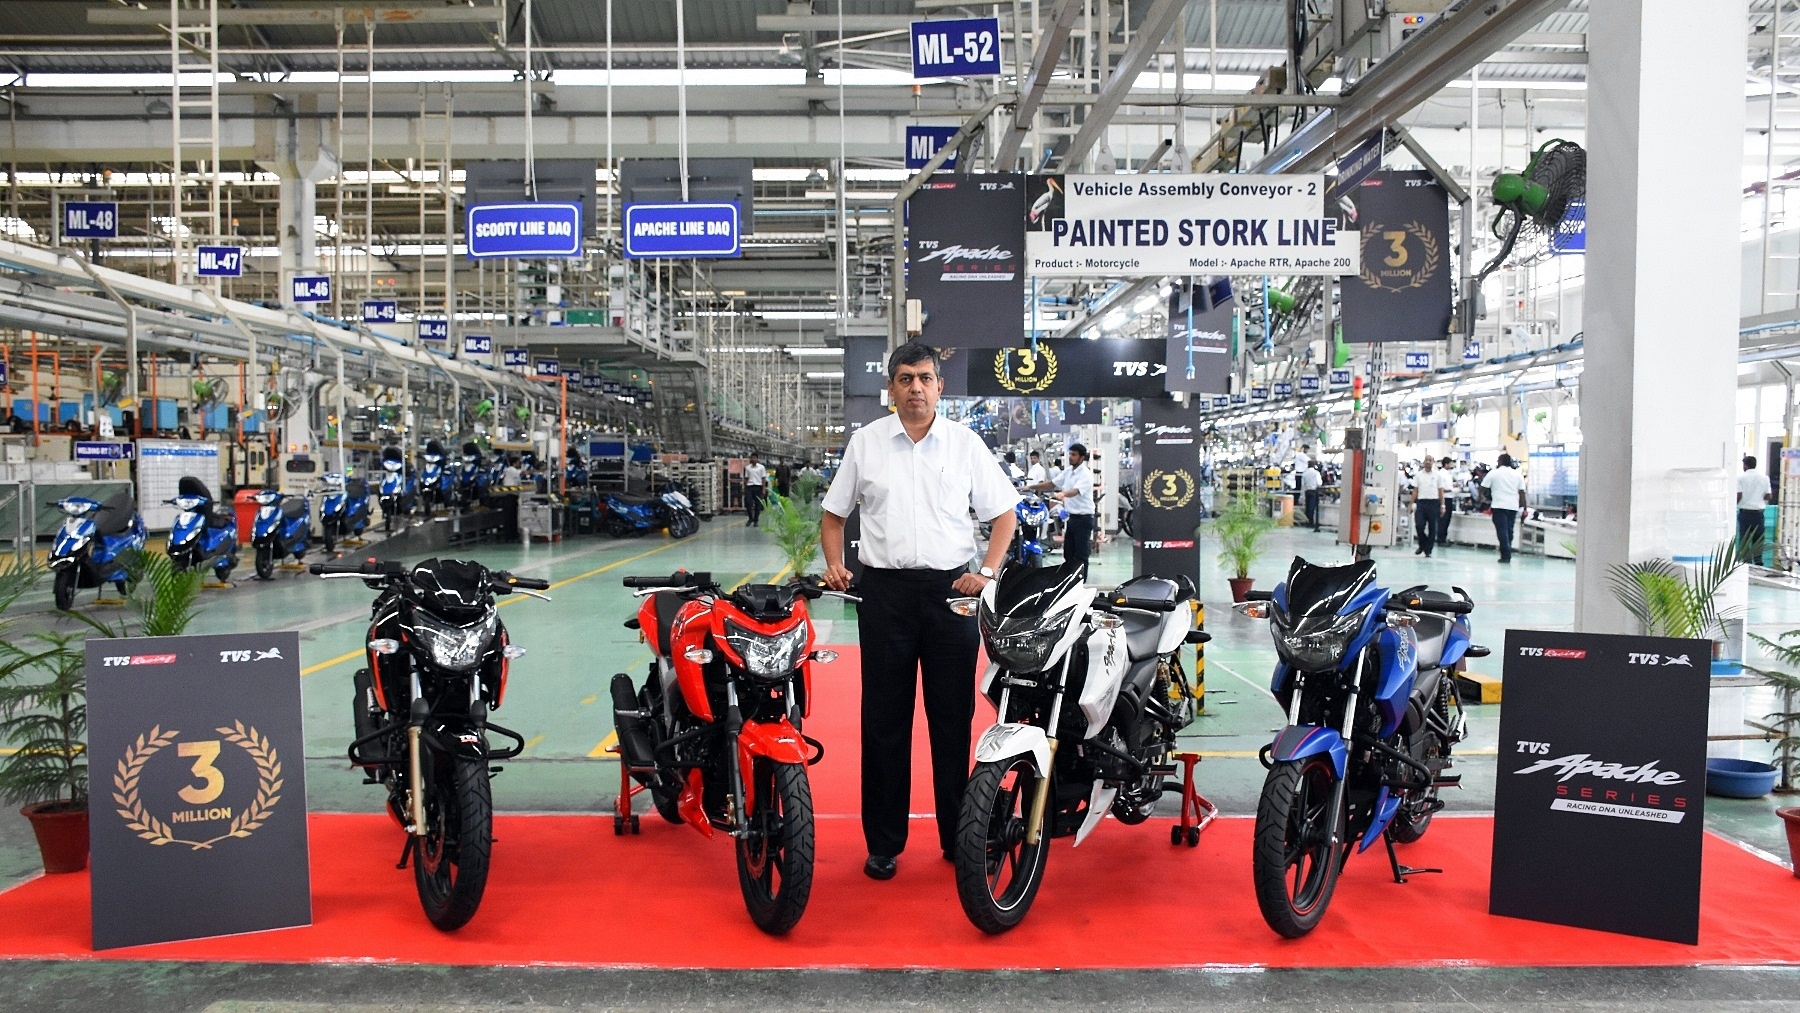 TVS Apache has now sold over 3 million units - factory photo